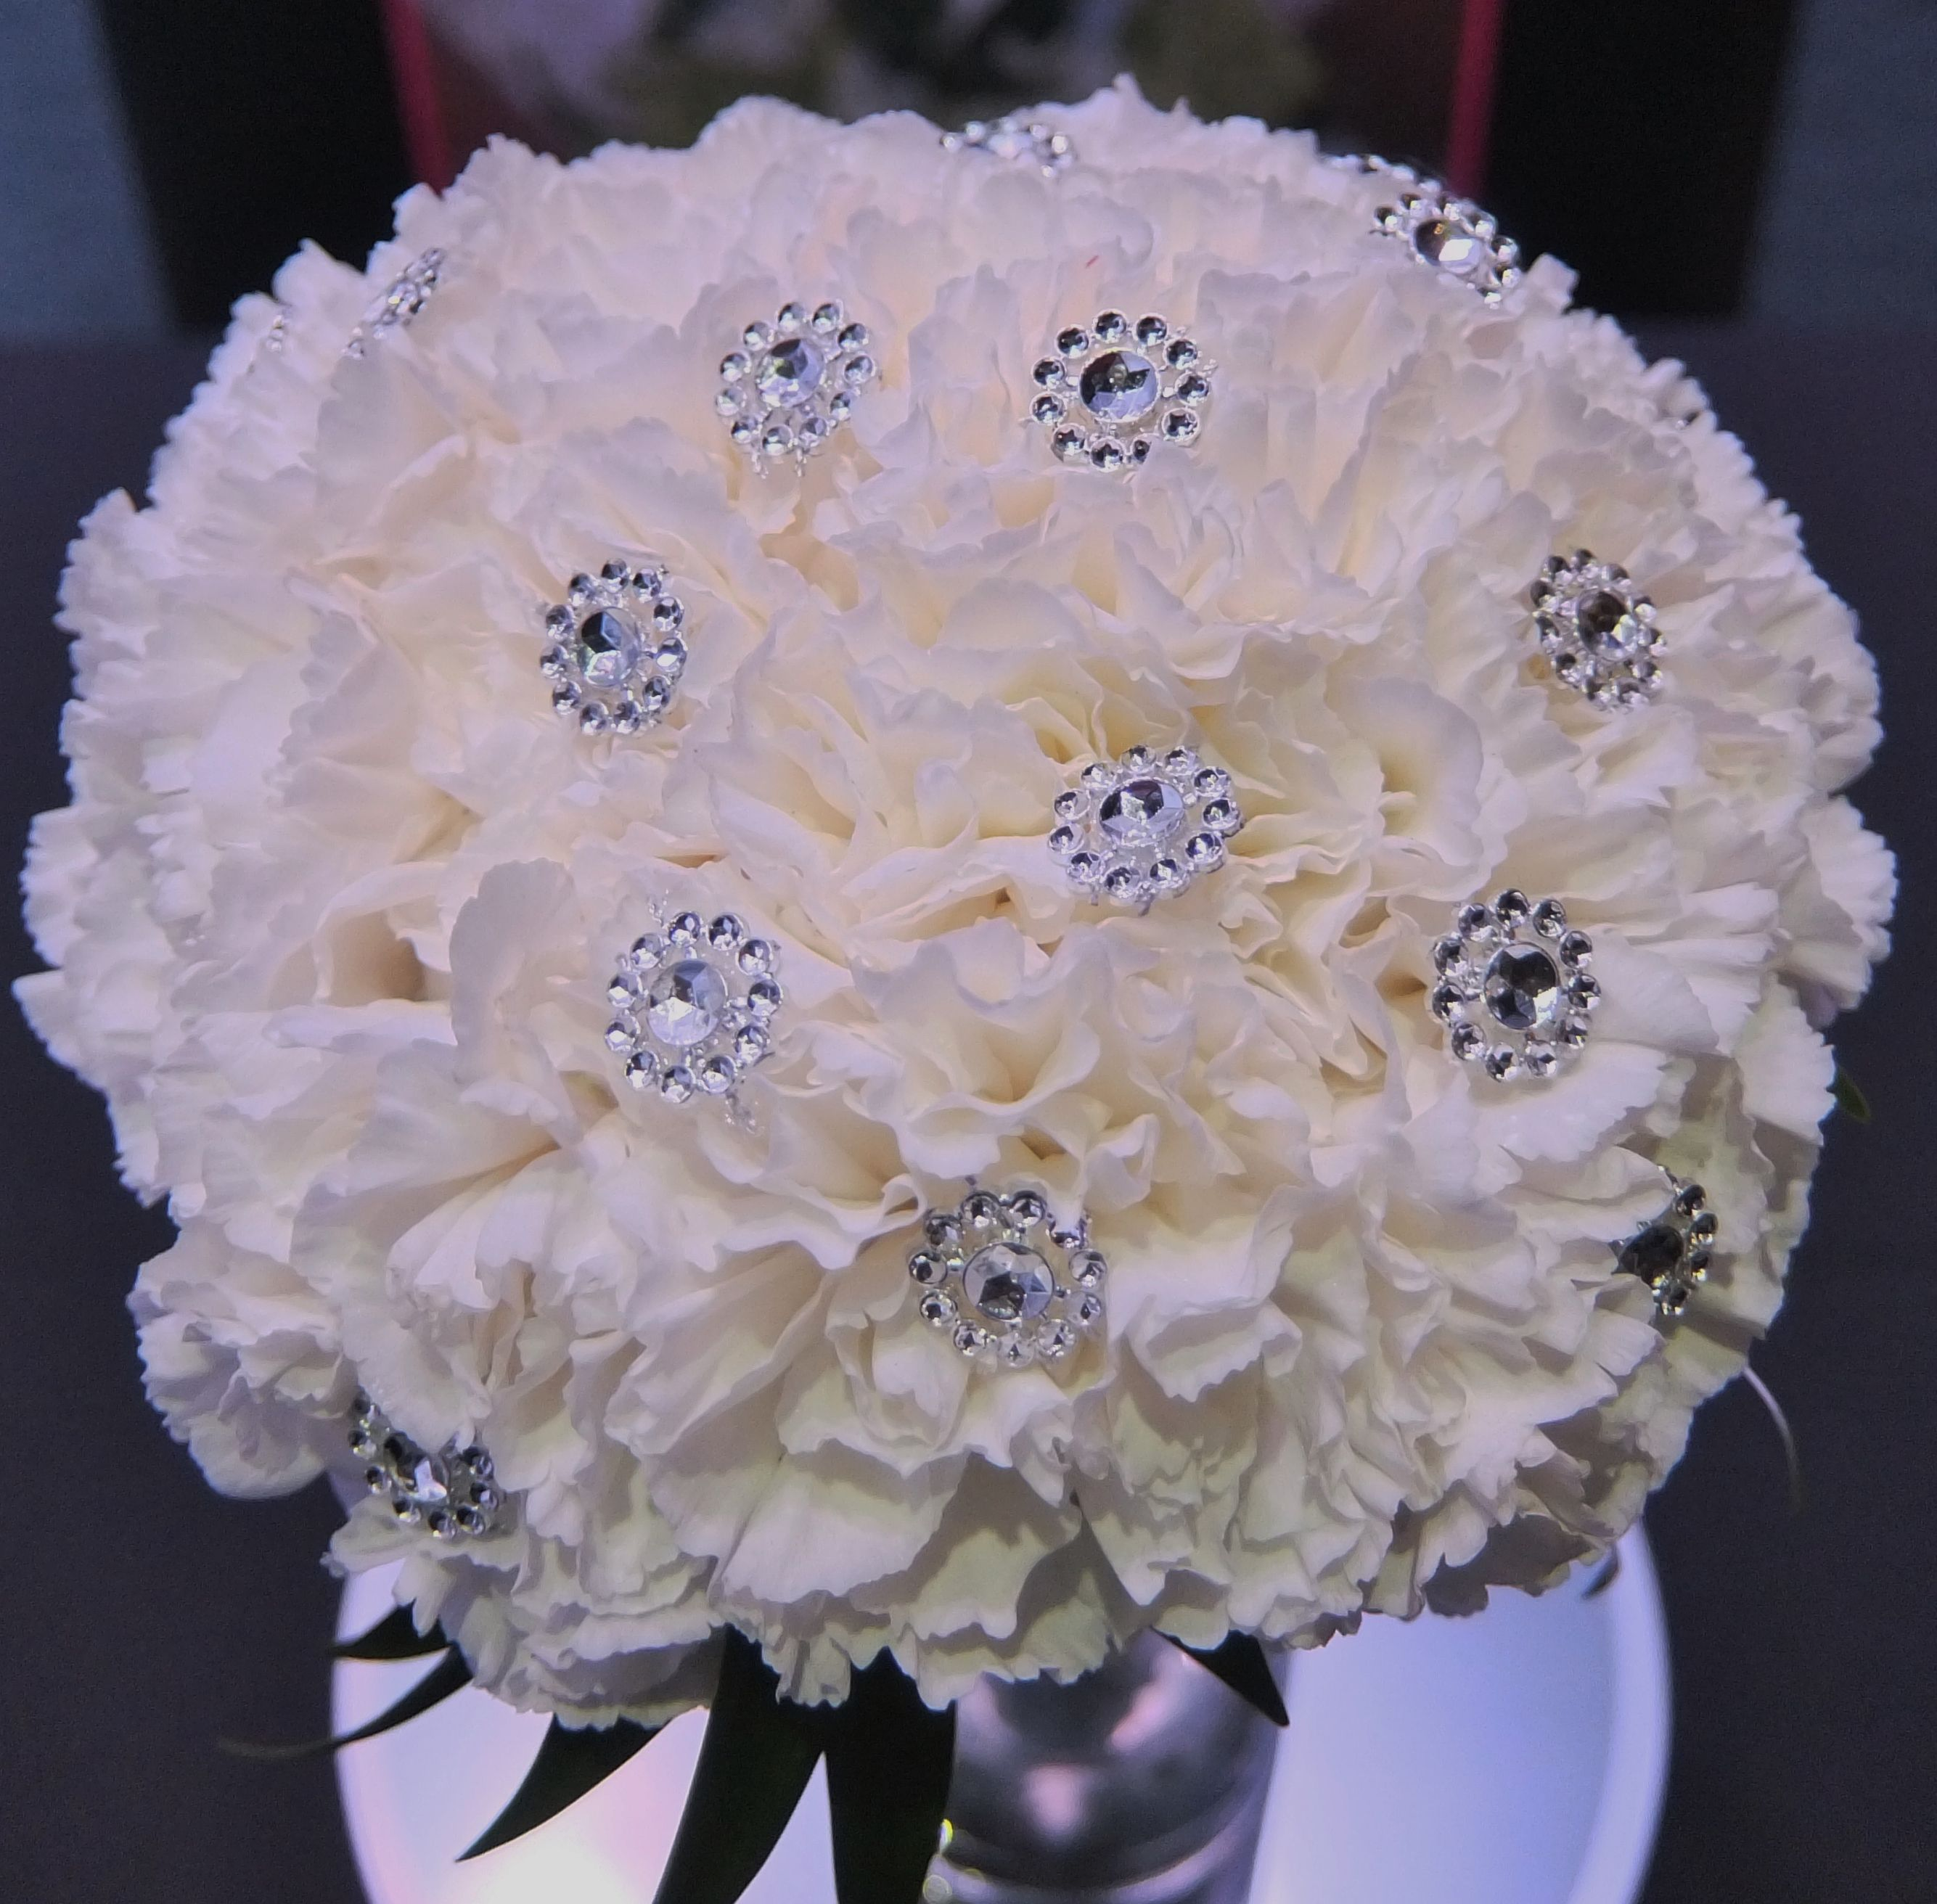 Gorgeous White Wedding Inspiration Bridalguide: Beautiful White Carnation Brides Bouquet With Bling By